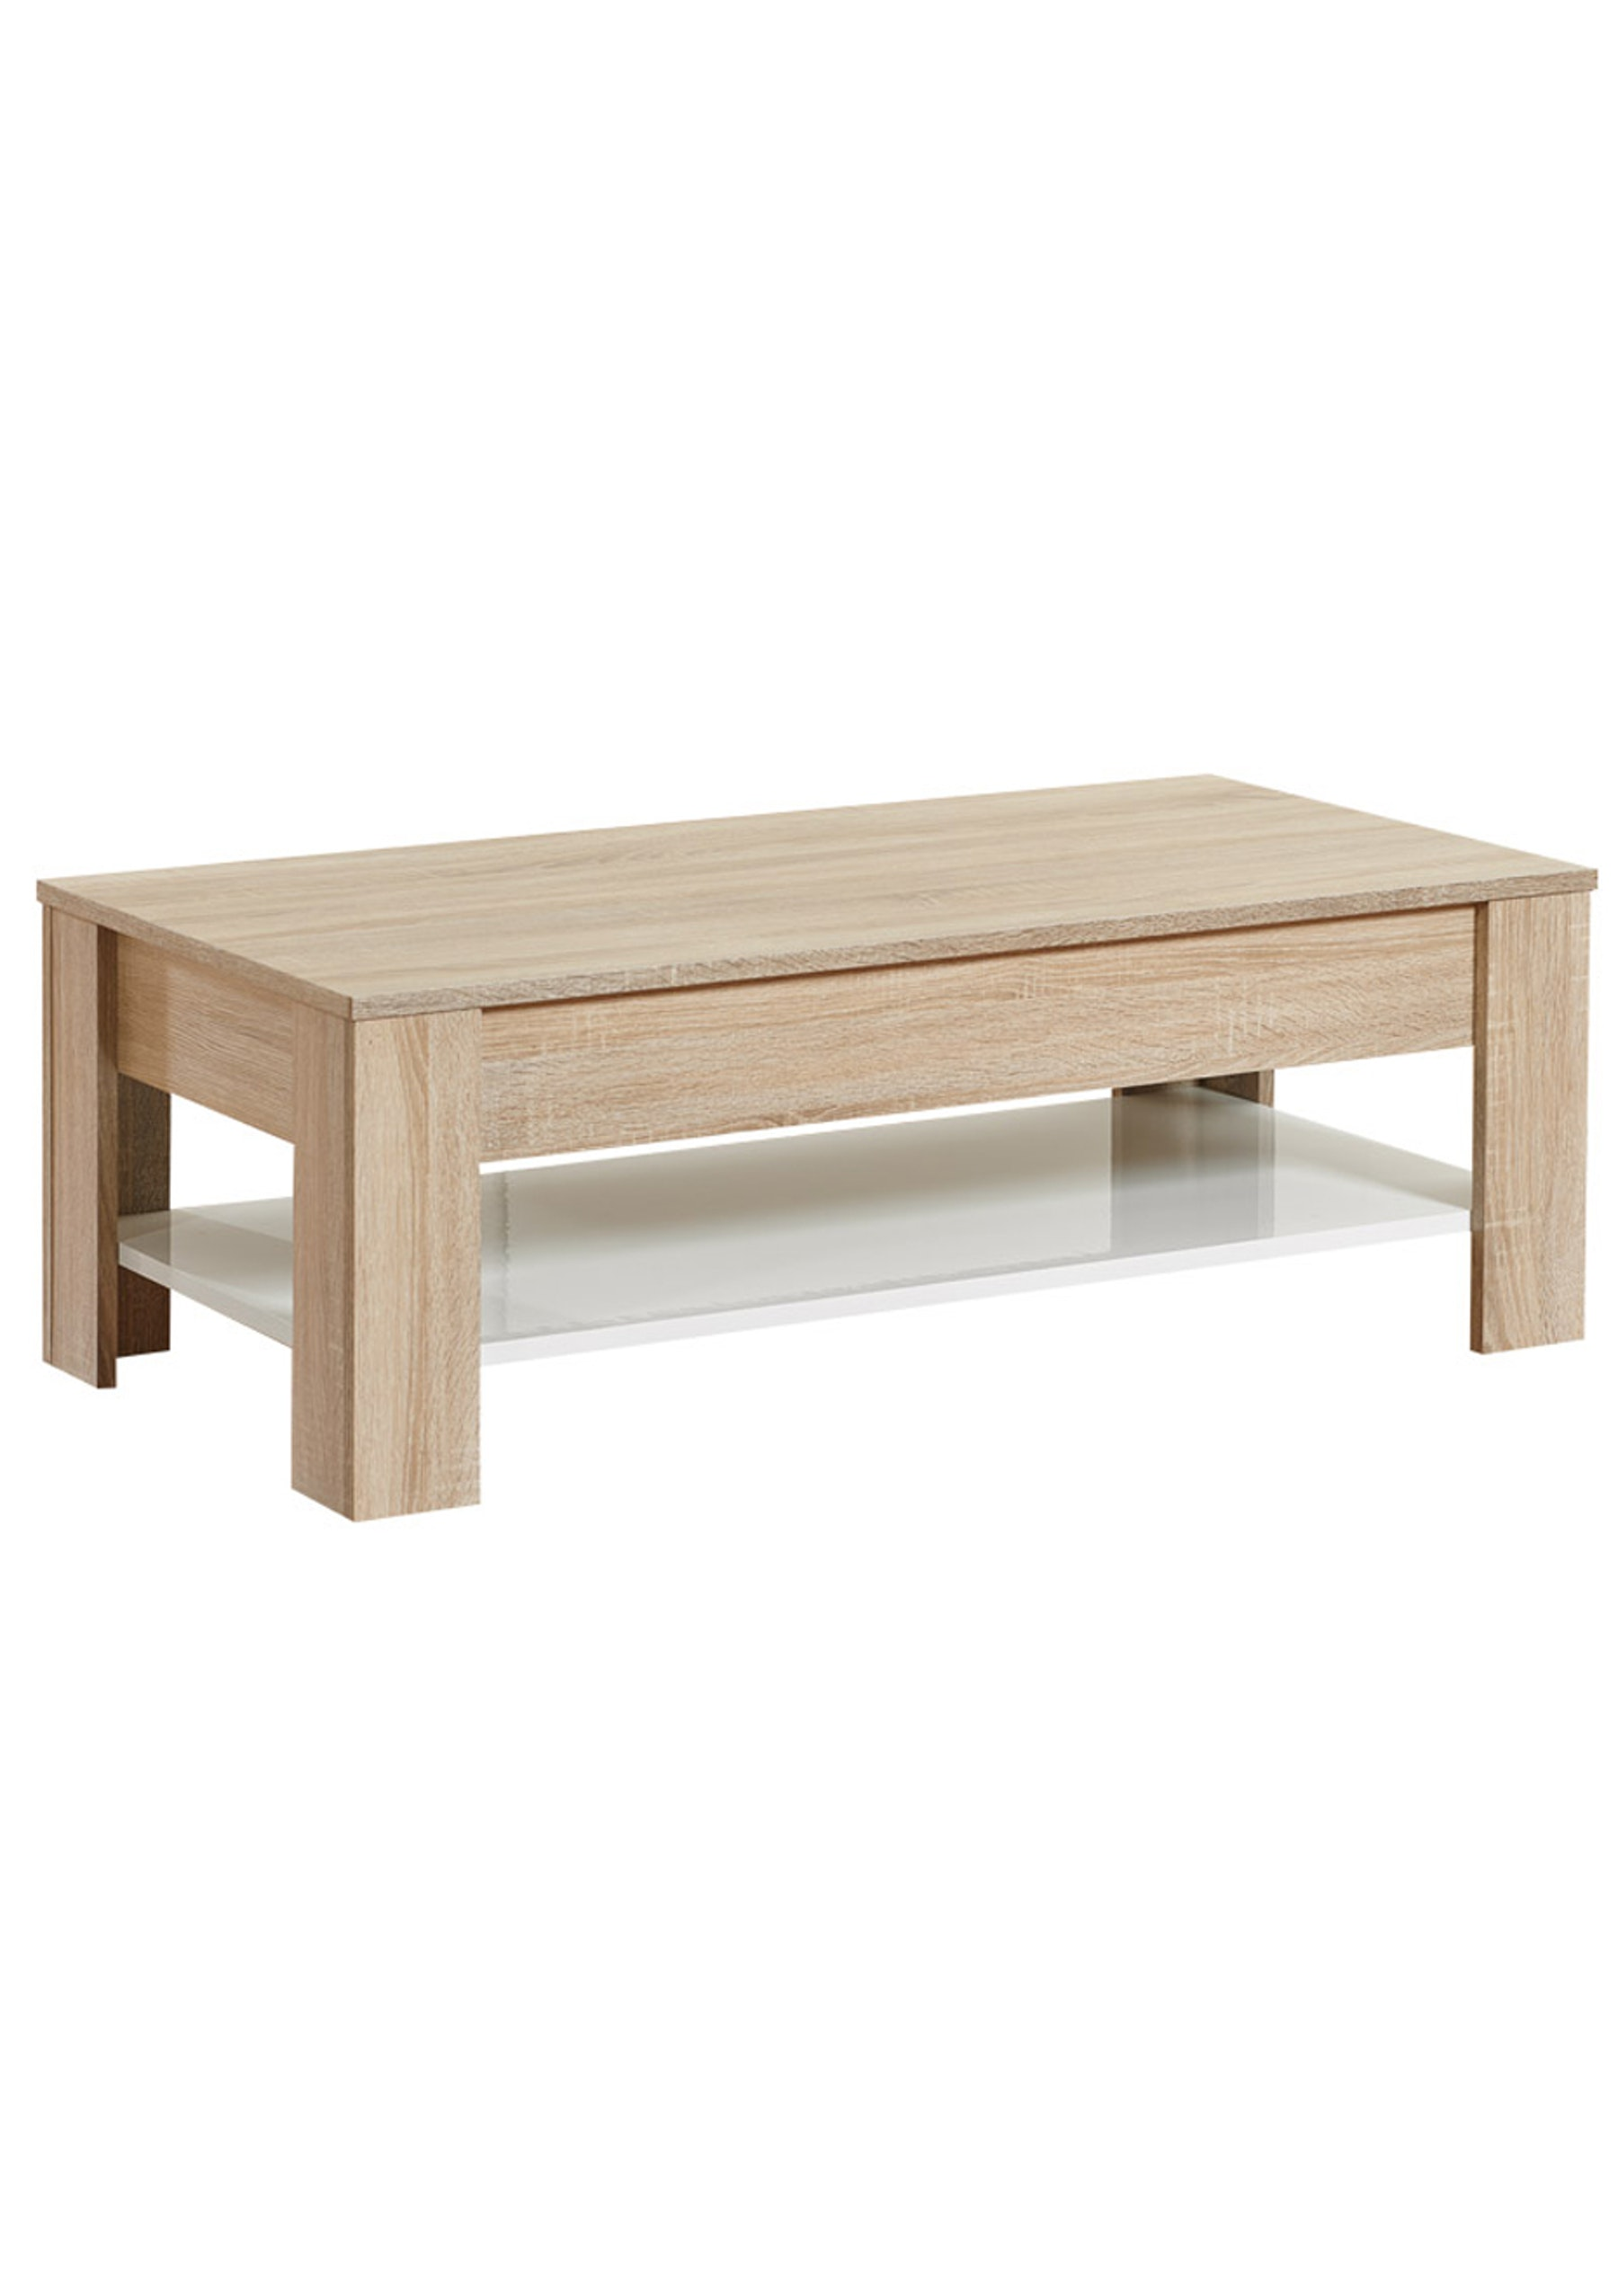 Toronto Lift Coffee Table Big Furniture Clearance ceit